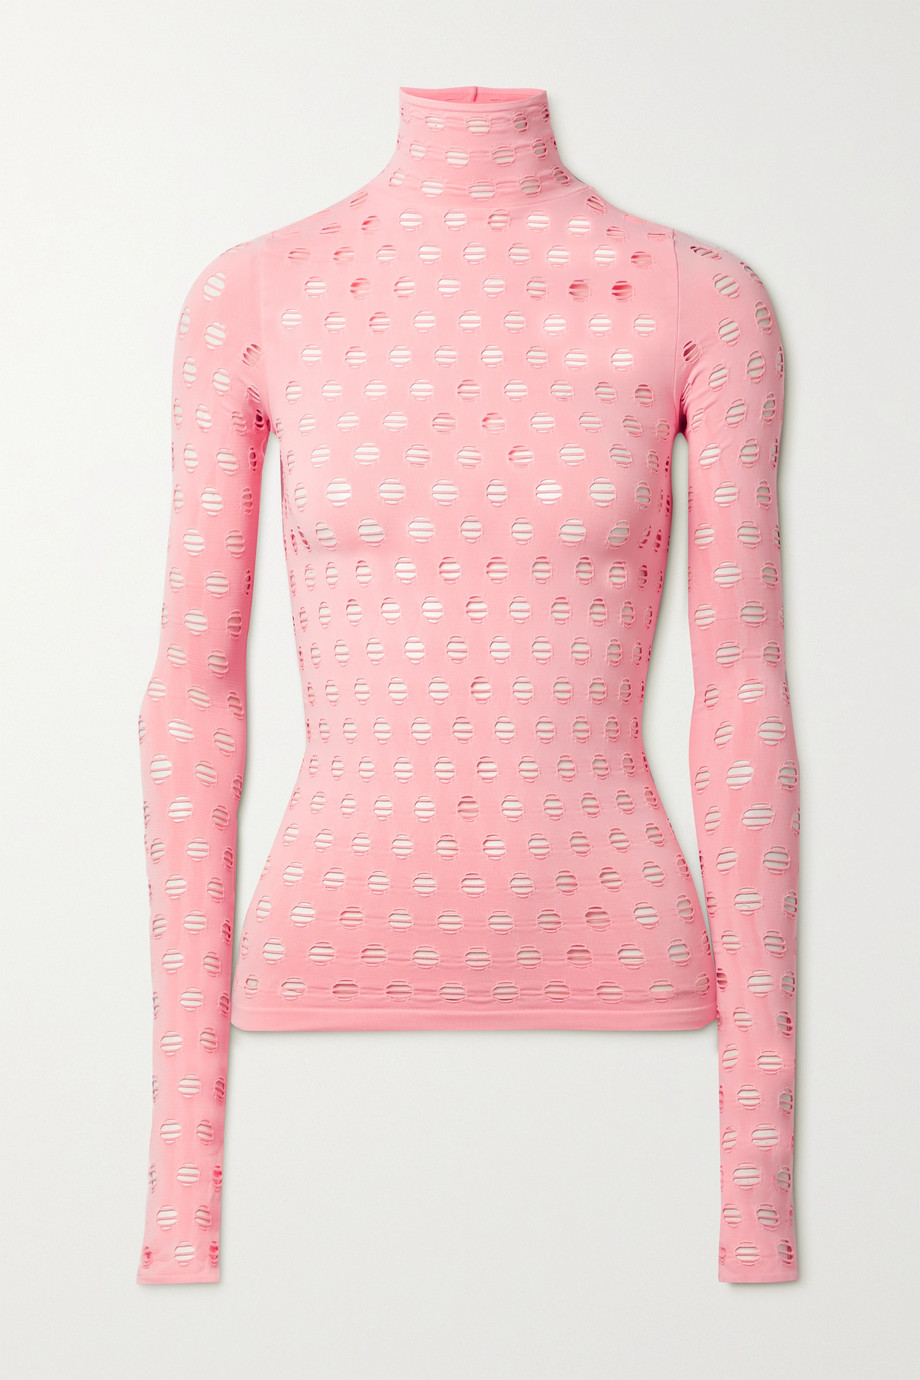 Maisie Wilen Perforated stretch-jersey turtleneck top